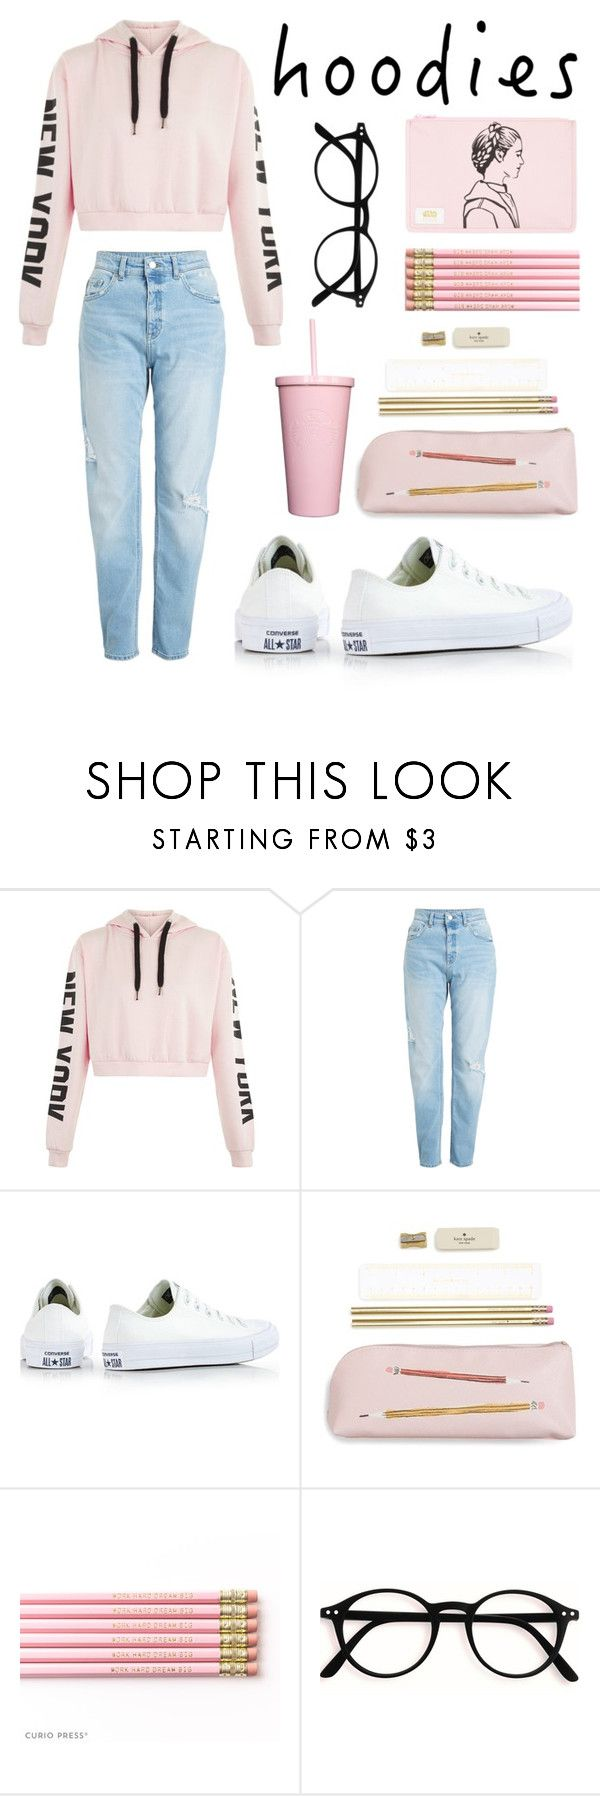 """""""I'm in love with pink"""" by zalfairsha ❤ liked on Polyvore featuring Converse, Kate Spade, STATE Bags and Hoodies"""